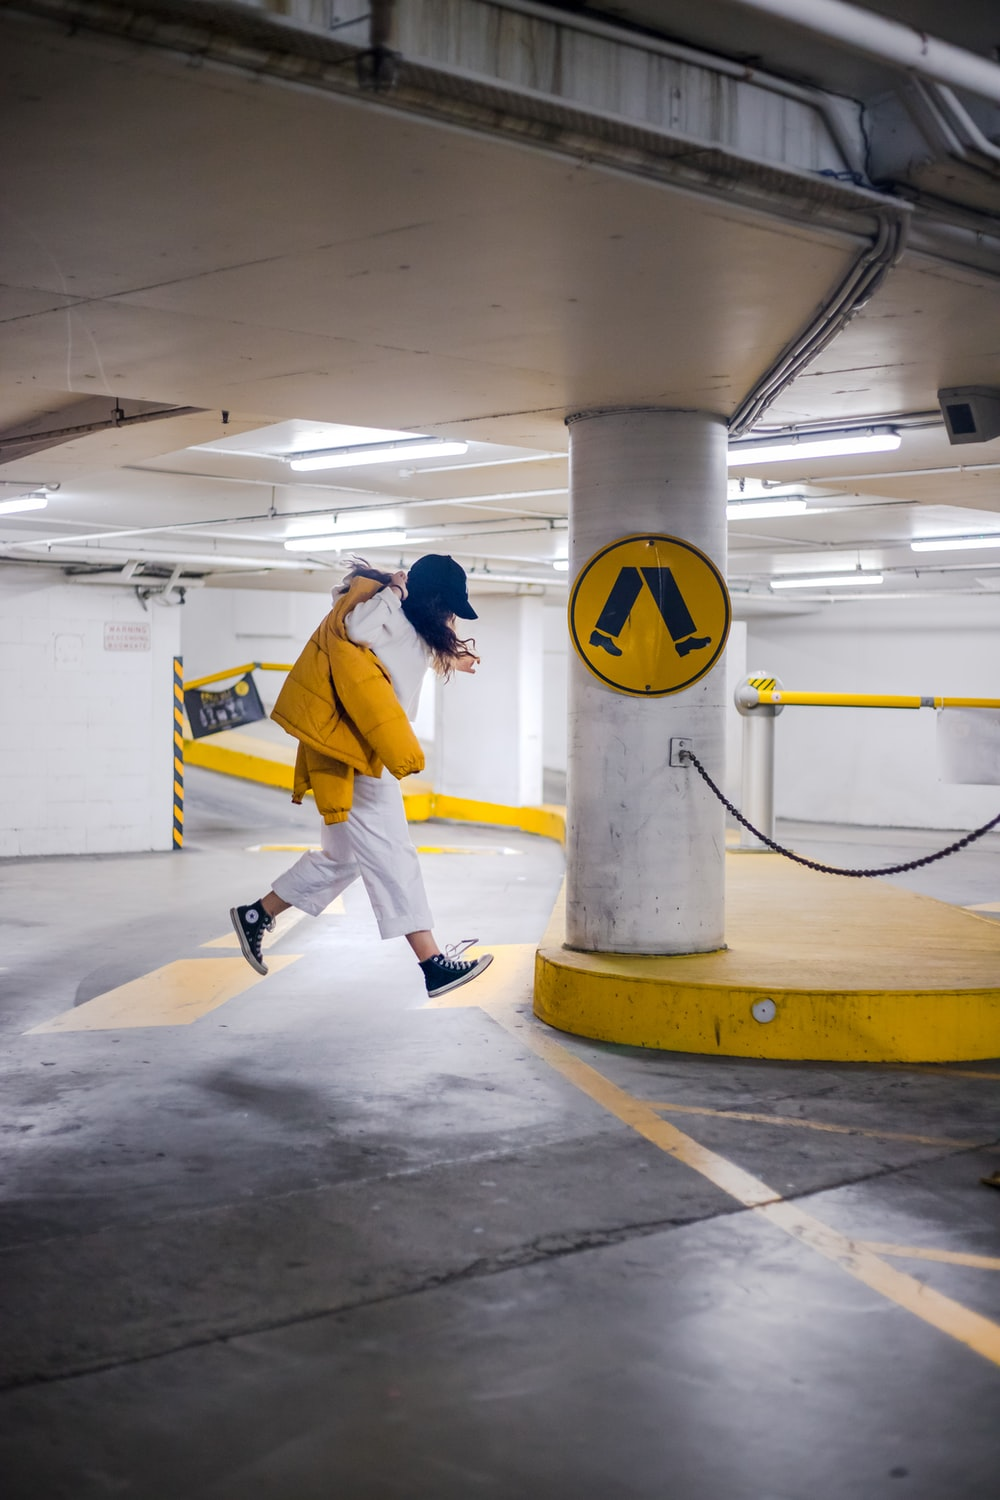 person wearing white jacket and pants jumping on parking lot